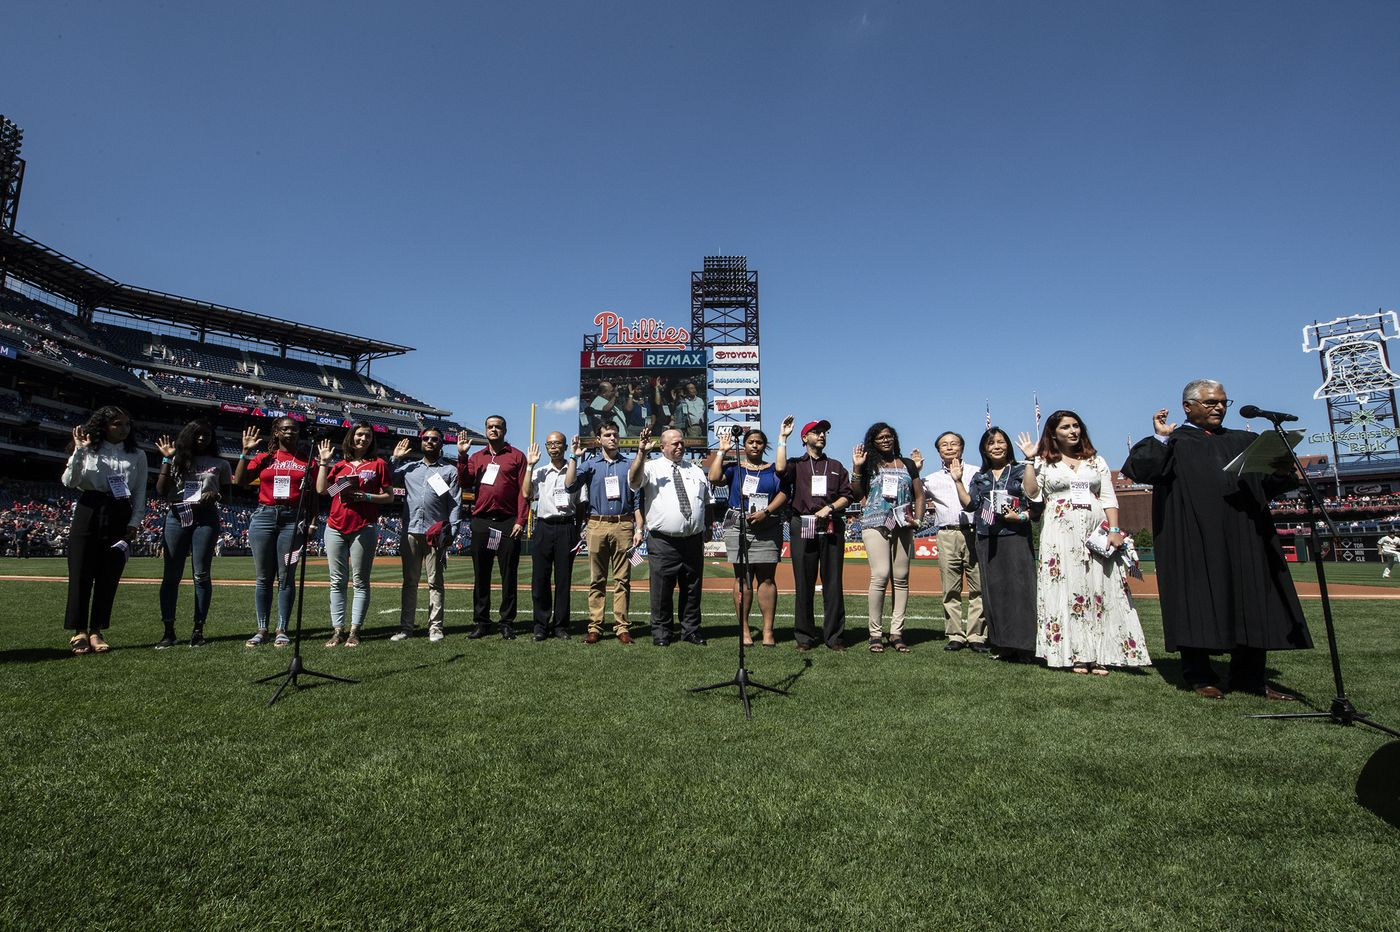 They went to a Phillies game for another American tradition: Becoming U.S. citizens